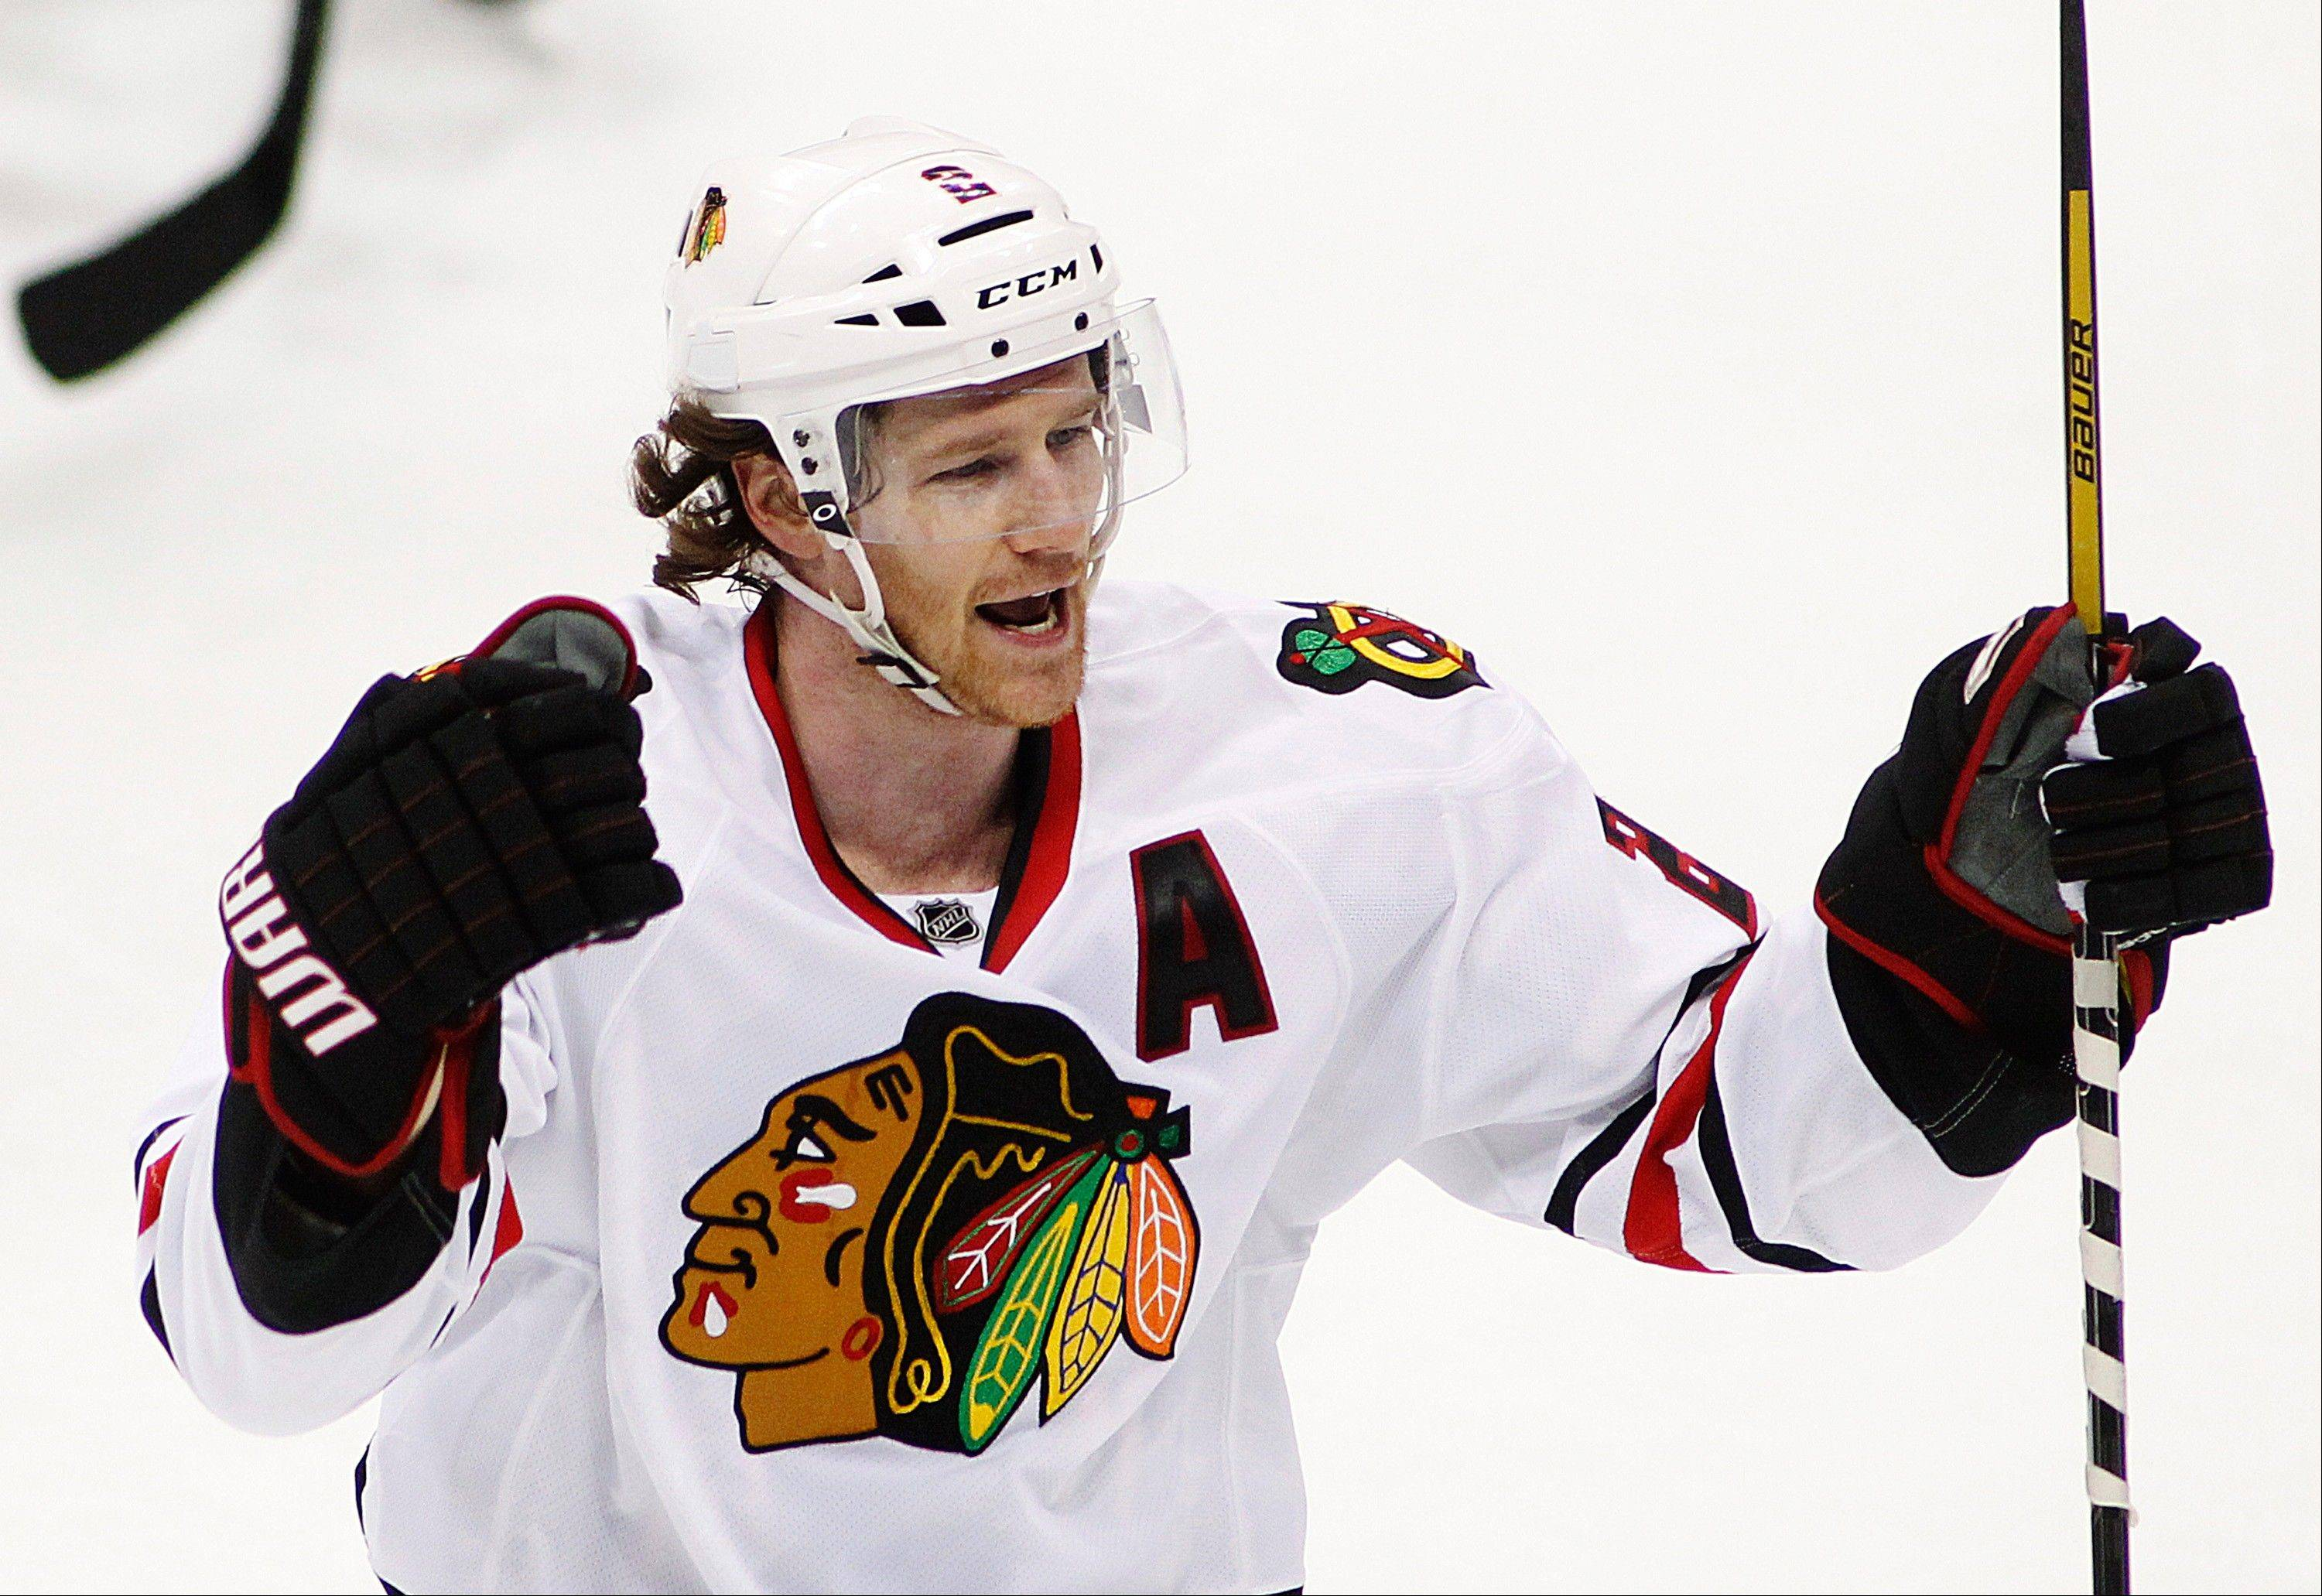 Blackhawks defenseman Duncan Keith will miss Thursday's Game 4 against the Kings after being suspended one game by the NHL for his slash to the face of Los Angeles forward Jeff Carter in Game 3.